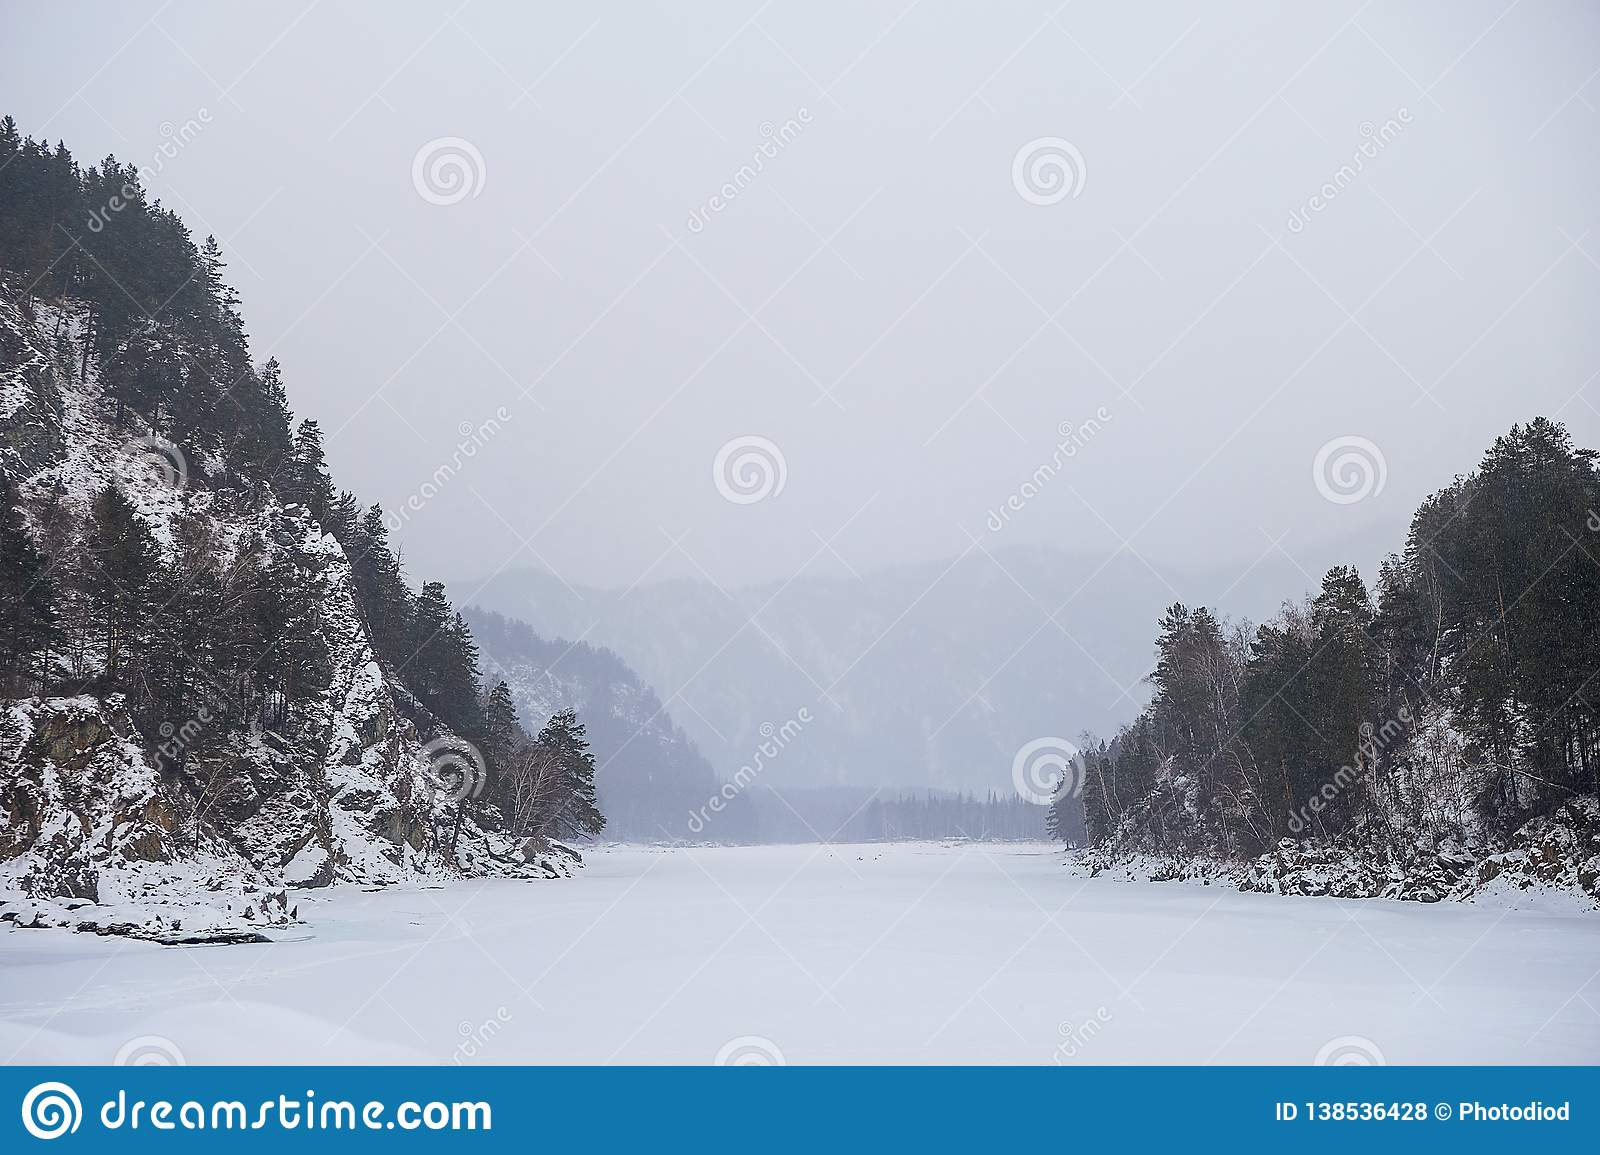 Blue winter mountain misty river. Snow frozen pine trees Idyllic landscape. Winter mountains natural view, sky, forest . Travel